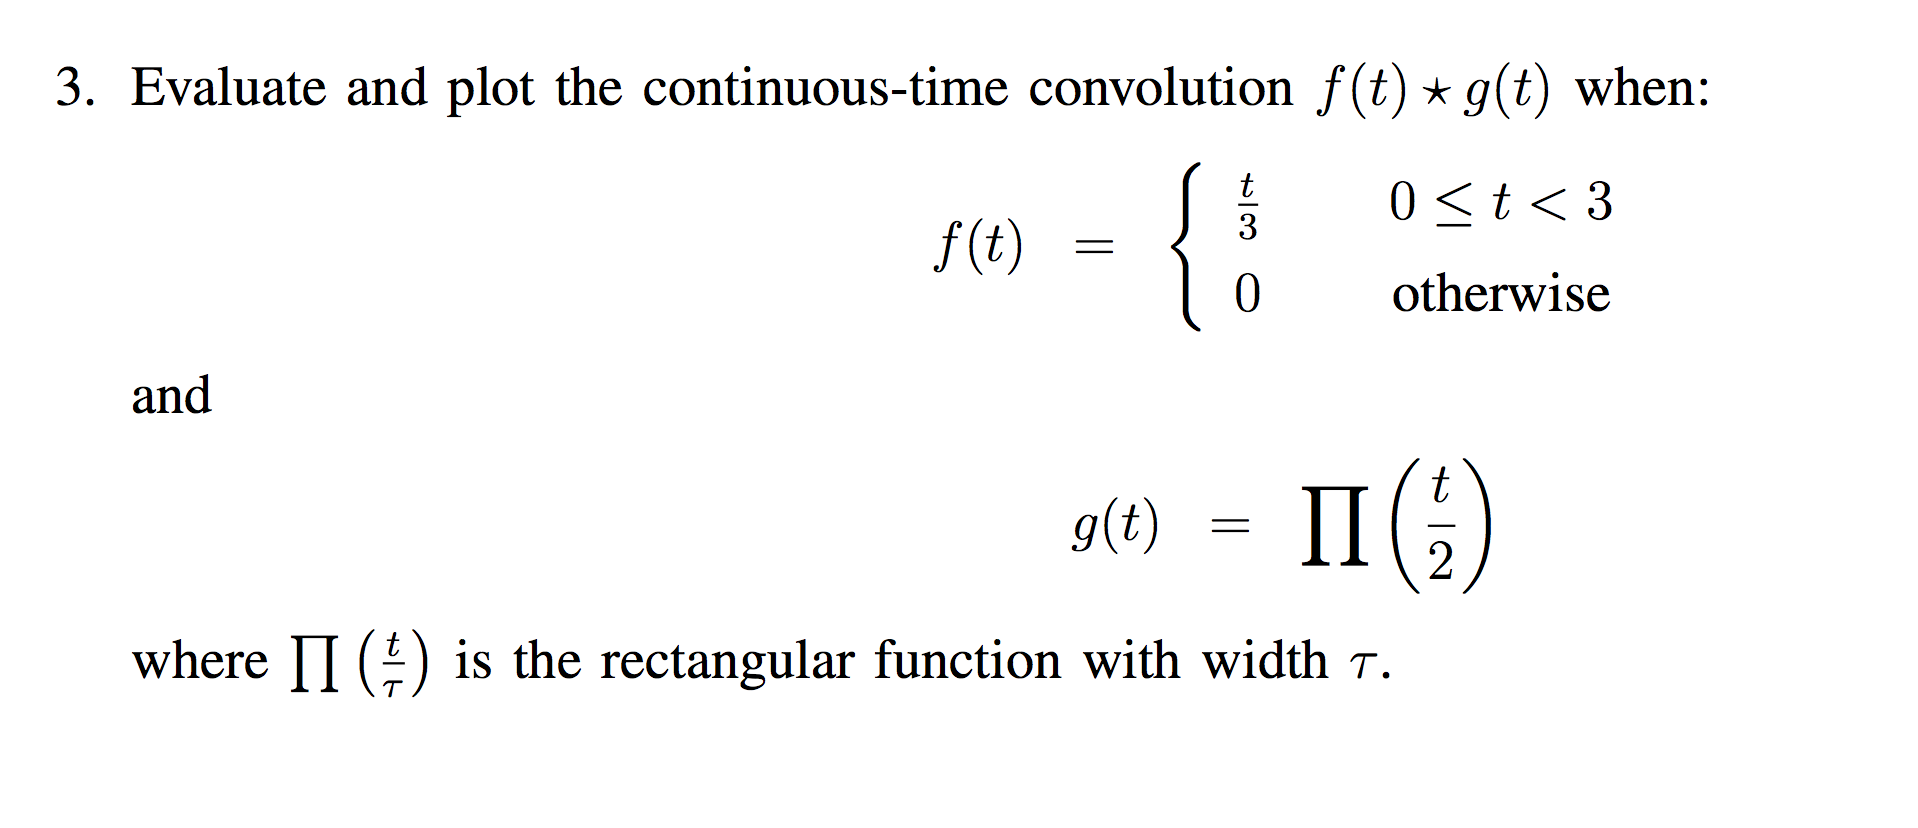 Evaluate and plot the continuous-time convolution